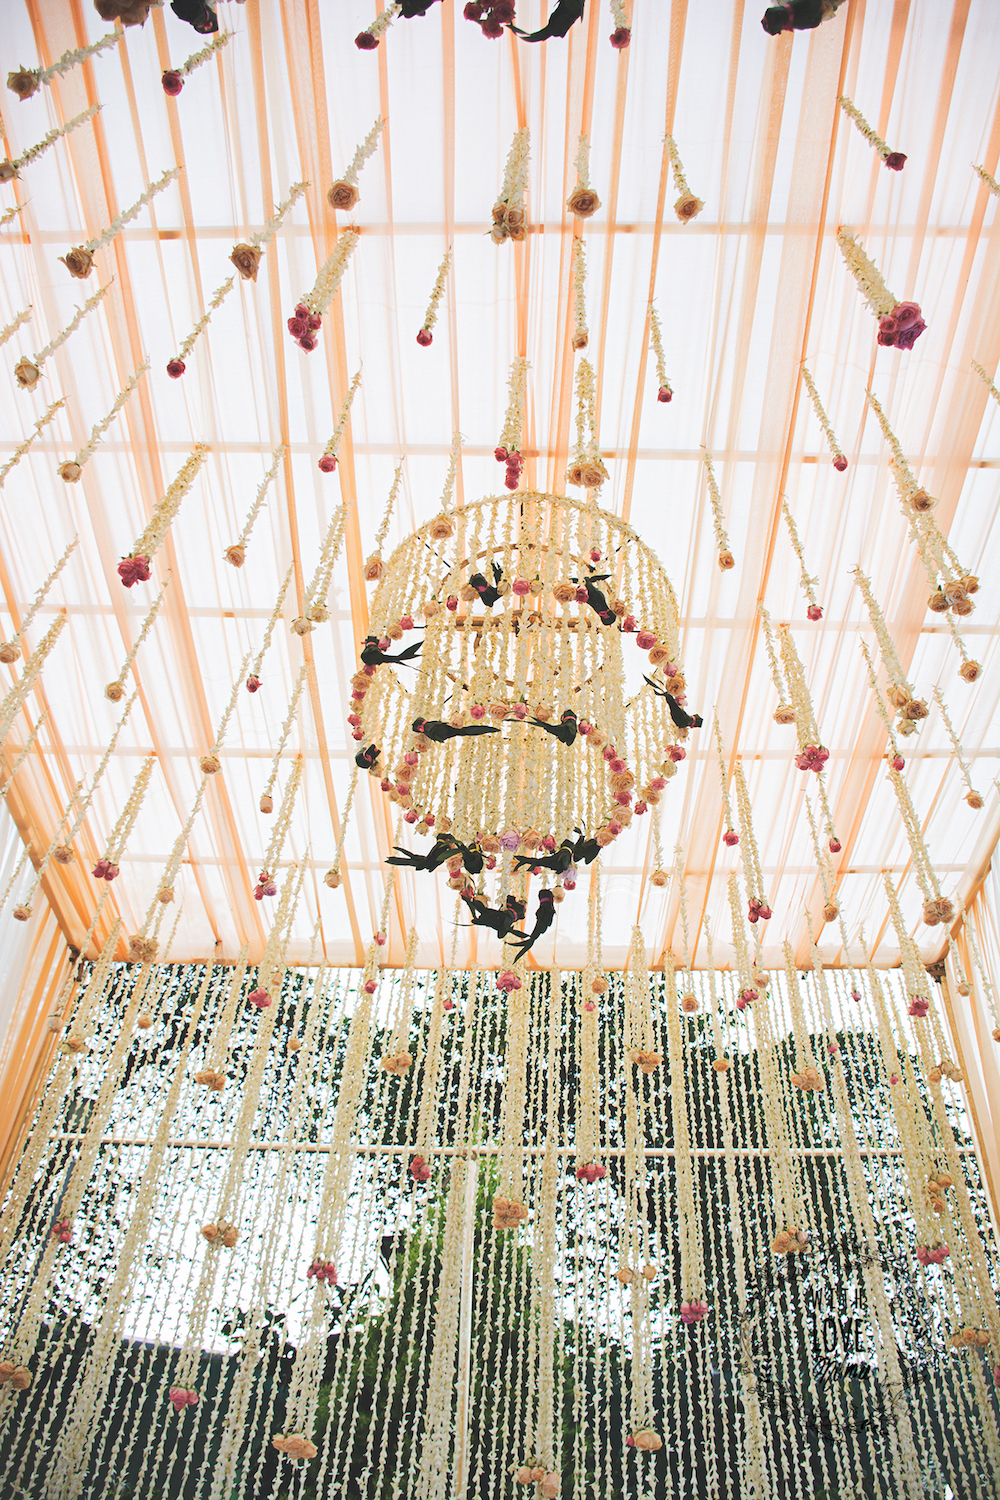 Curtain of Tuberoses with Floral Chandelier with ceiling of light peach colour